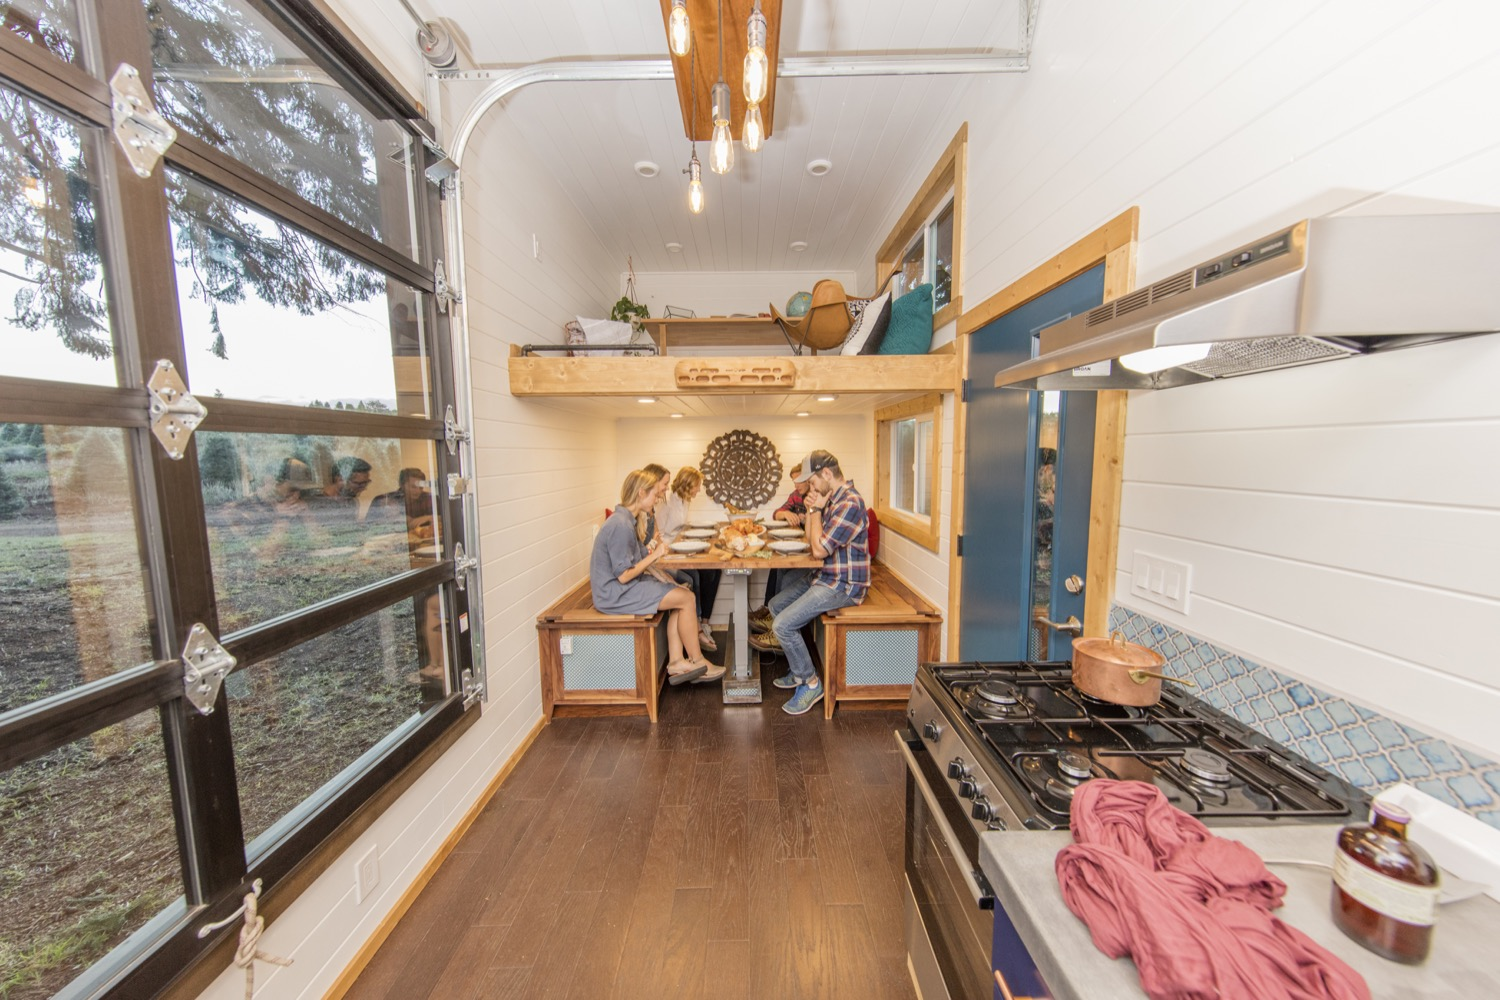 Couples Rock Climbing Tiny House Lifestyle by Tiny Heirloom Dining 002